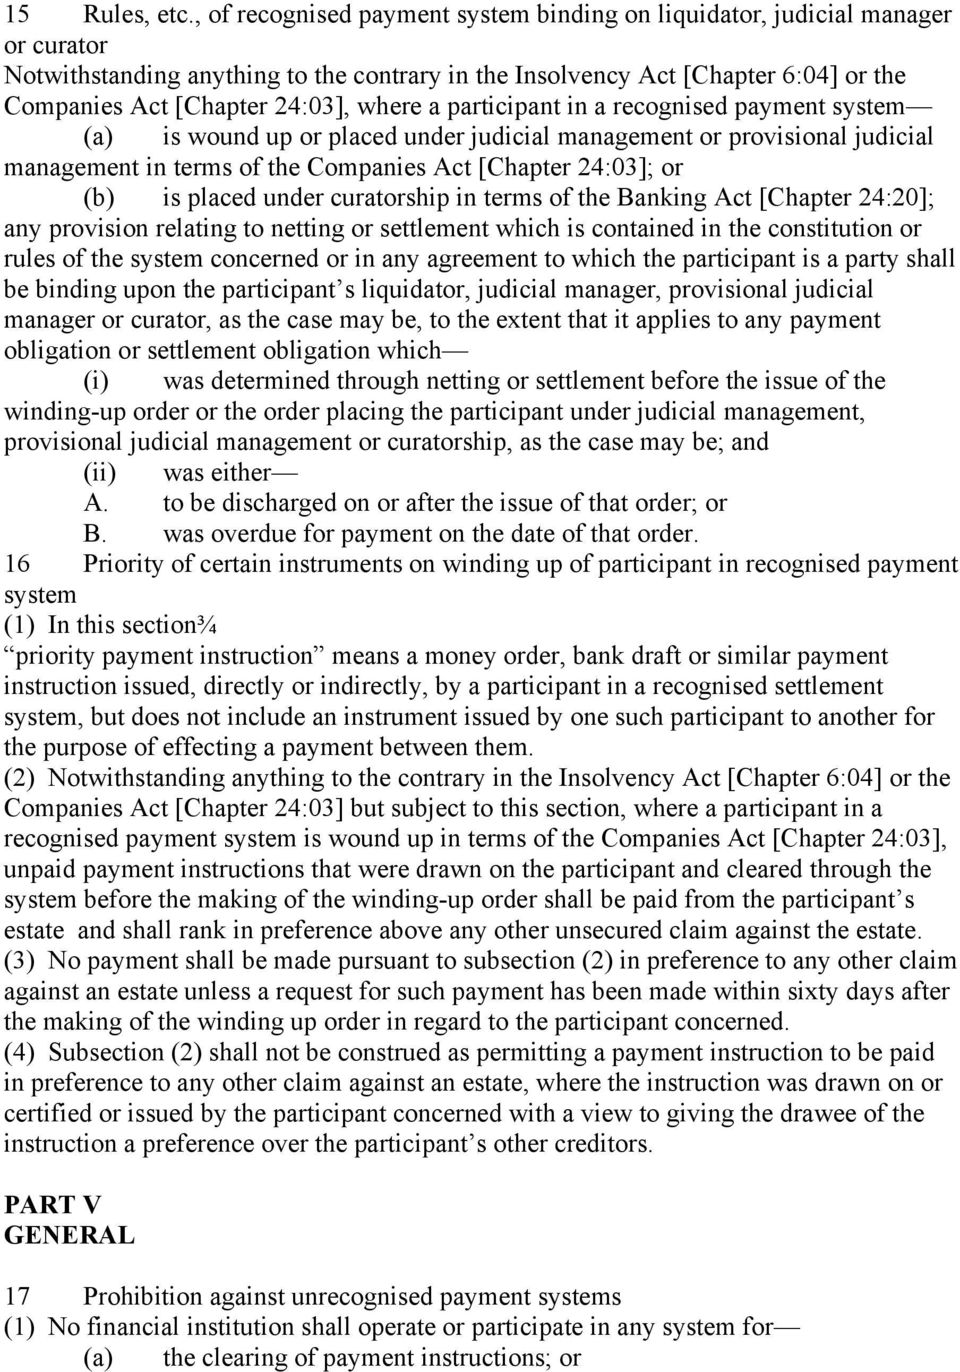 where a participant in a recognised payment system (a) is wound up or placed under judicial management or provisional judicial management in terms of the Companies Act [Chapter 24:03]; or (b) is